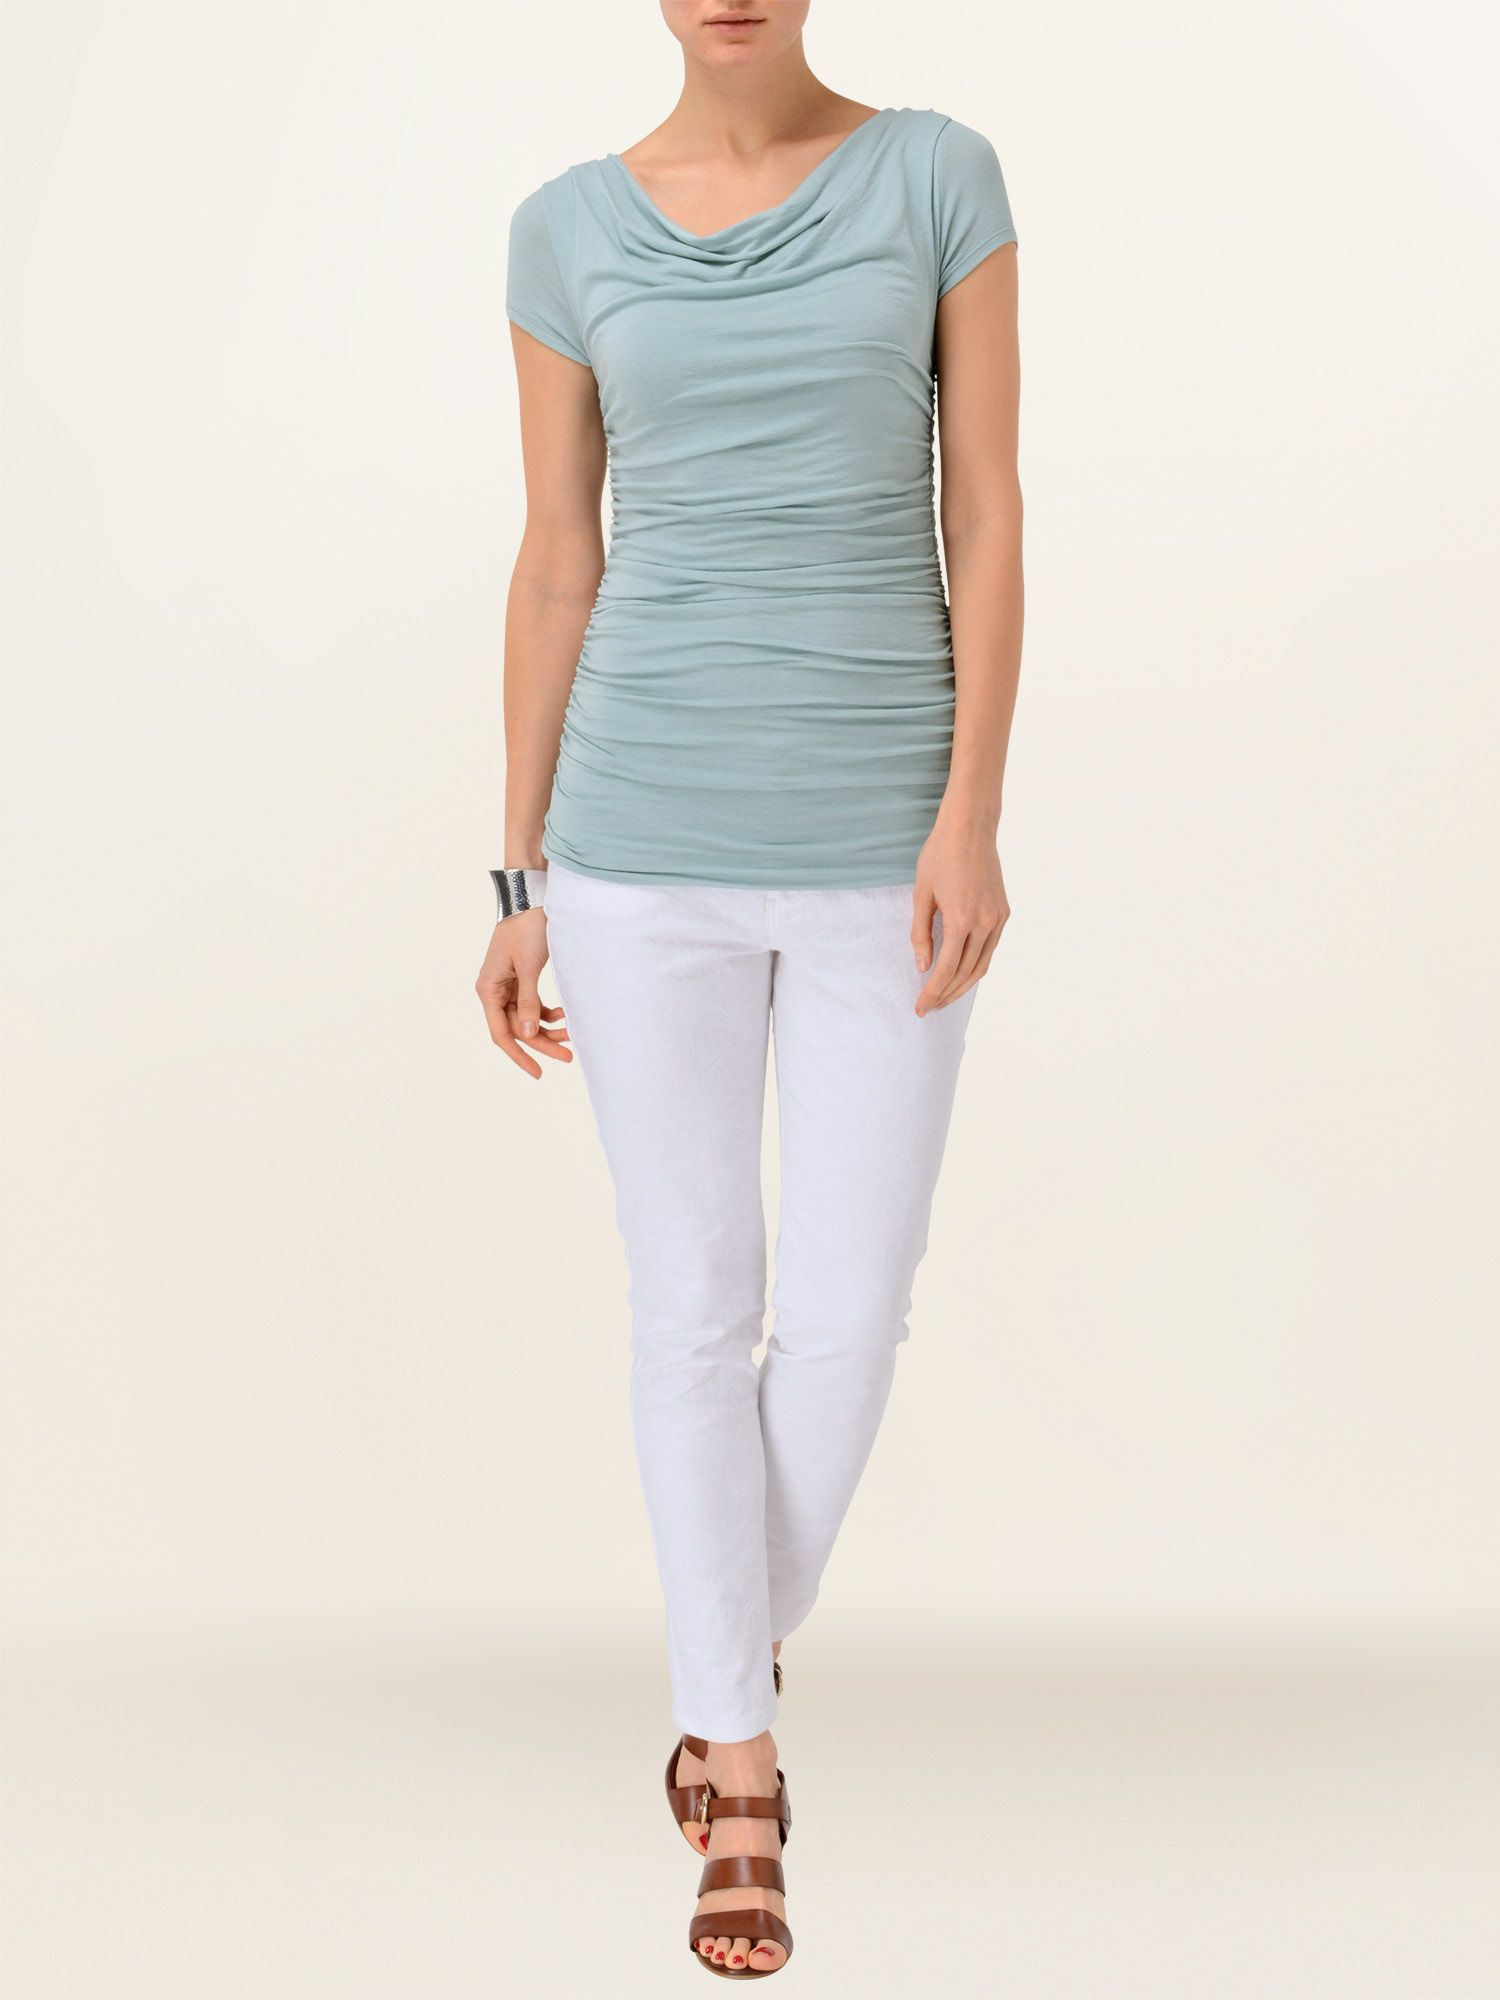 Tallie cap sleeve top